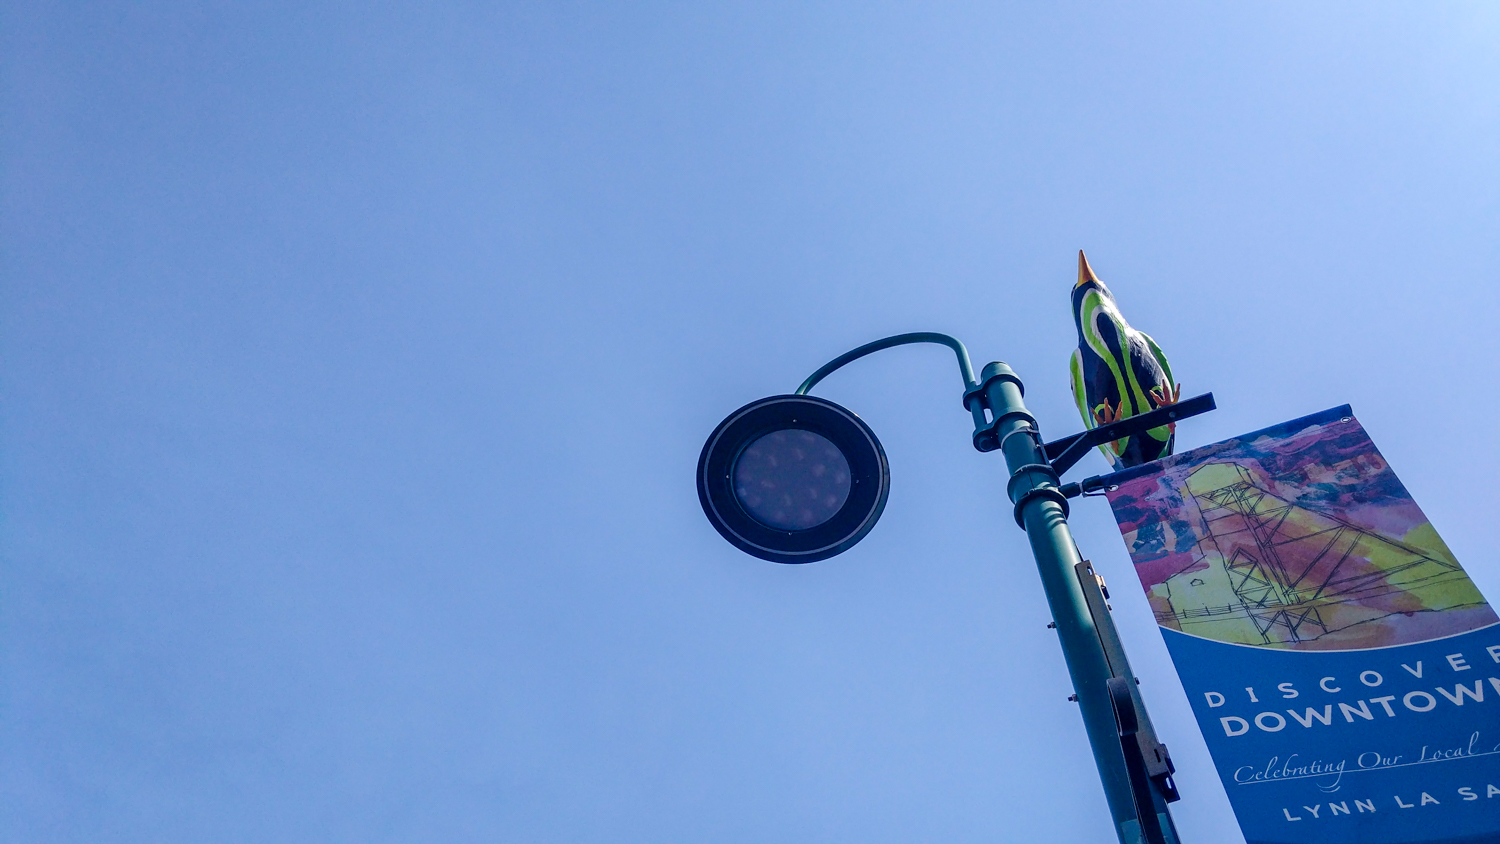 A lamppost in the City of Yellowknife